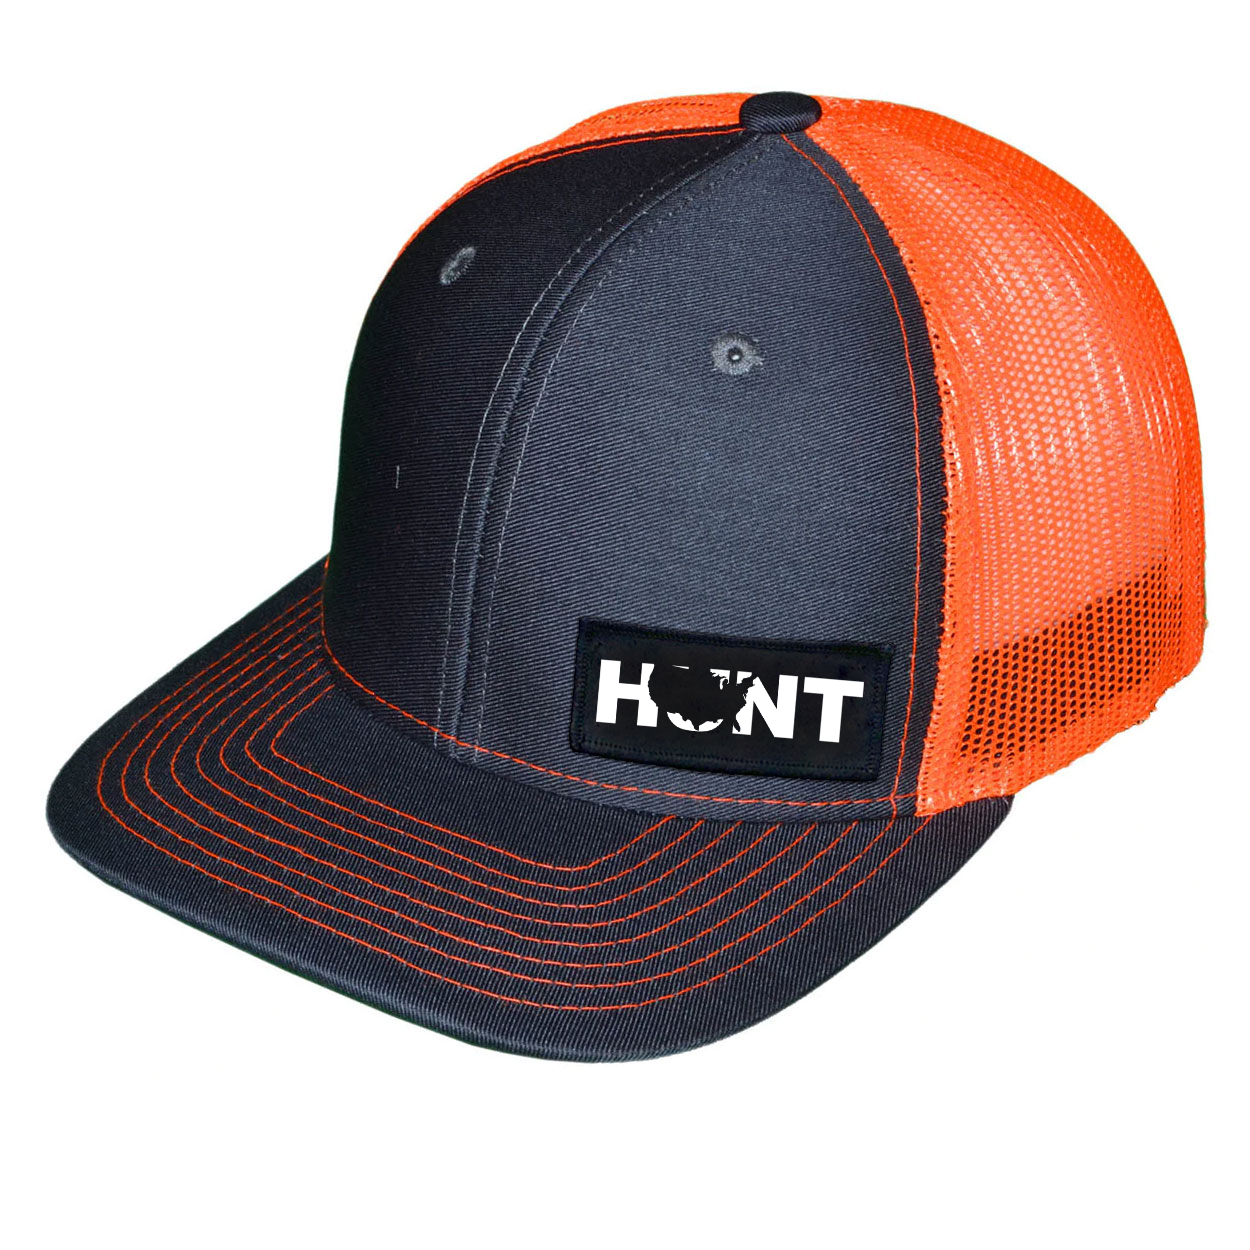 Hunt United States Night Out Woven Patch Snapback Trucker Hat Dark Gray/Orange (White Logo)